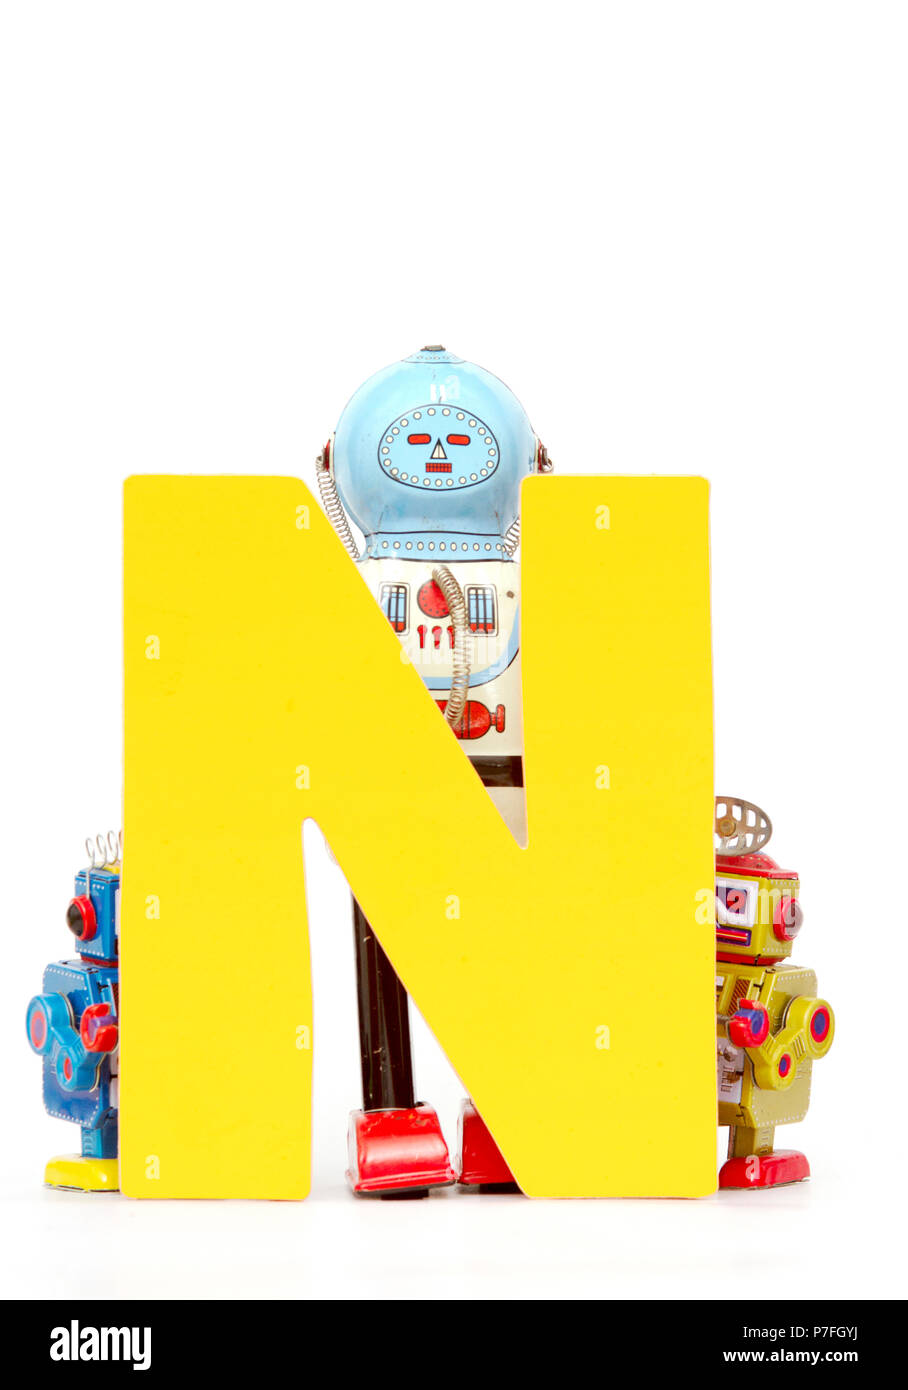 Capital Letter N Held By Vintage Robot Toys Stock Photo 211169606